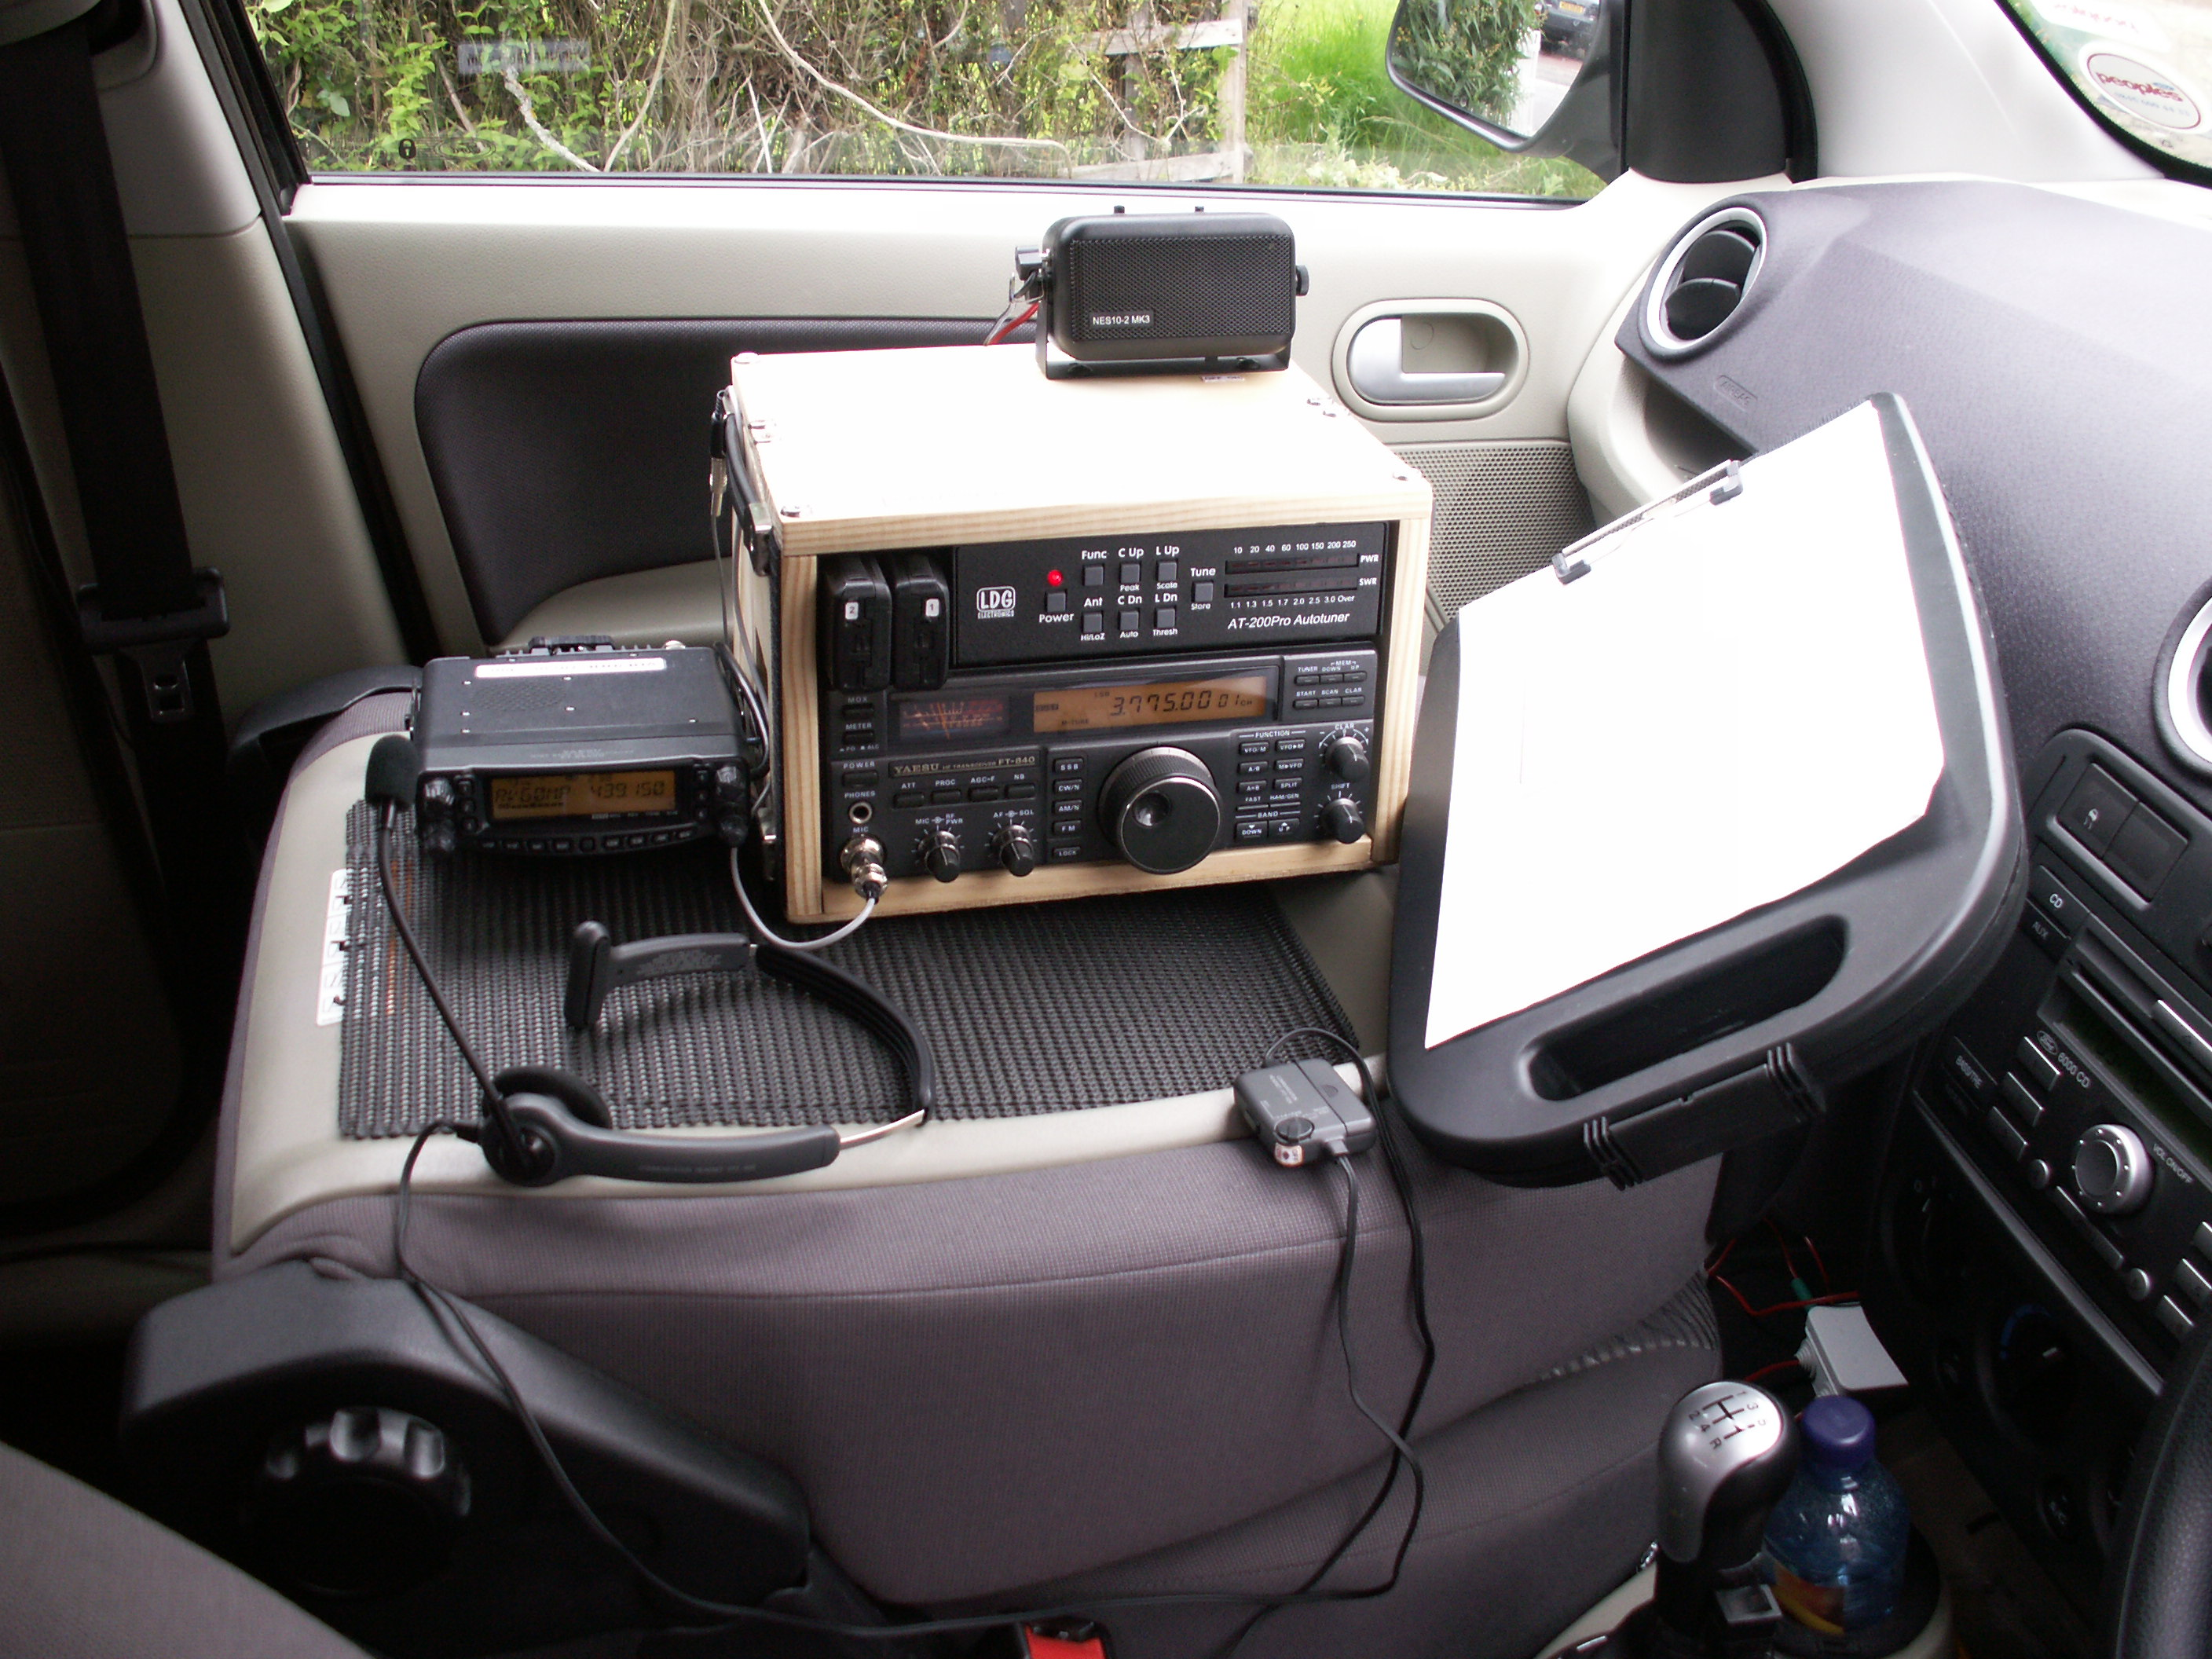 VHF/UHF and HF rigs on passenger seat of car